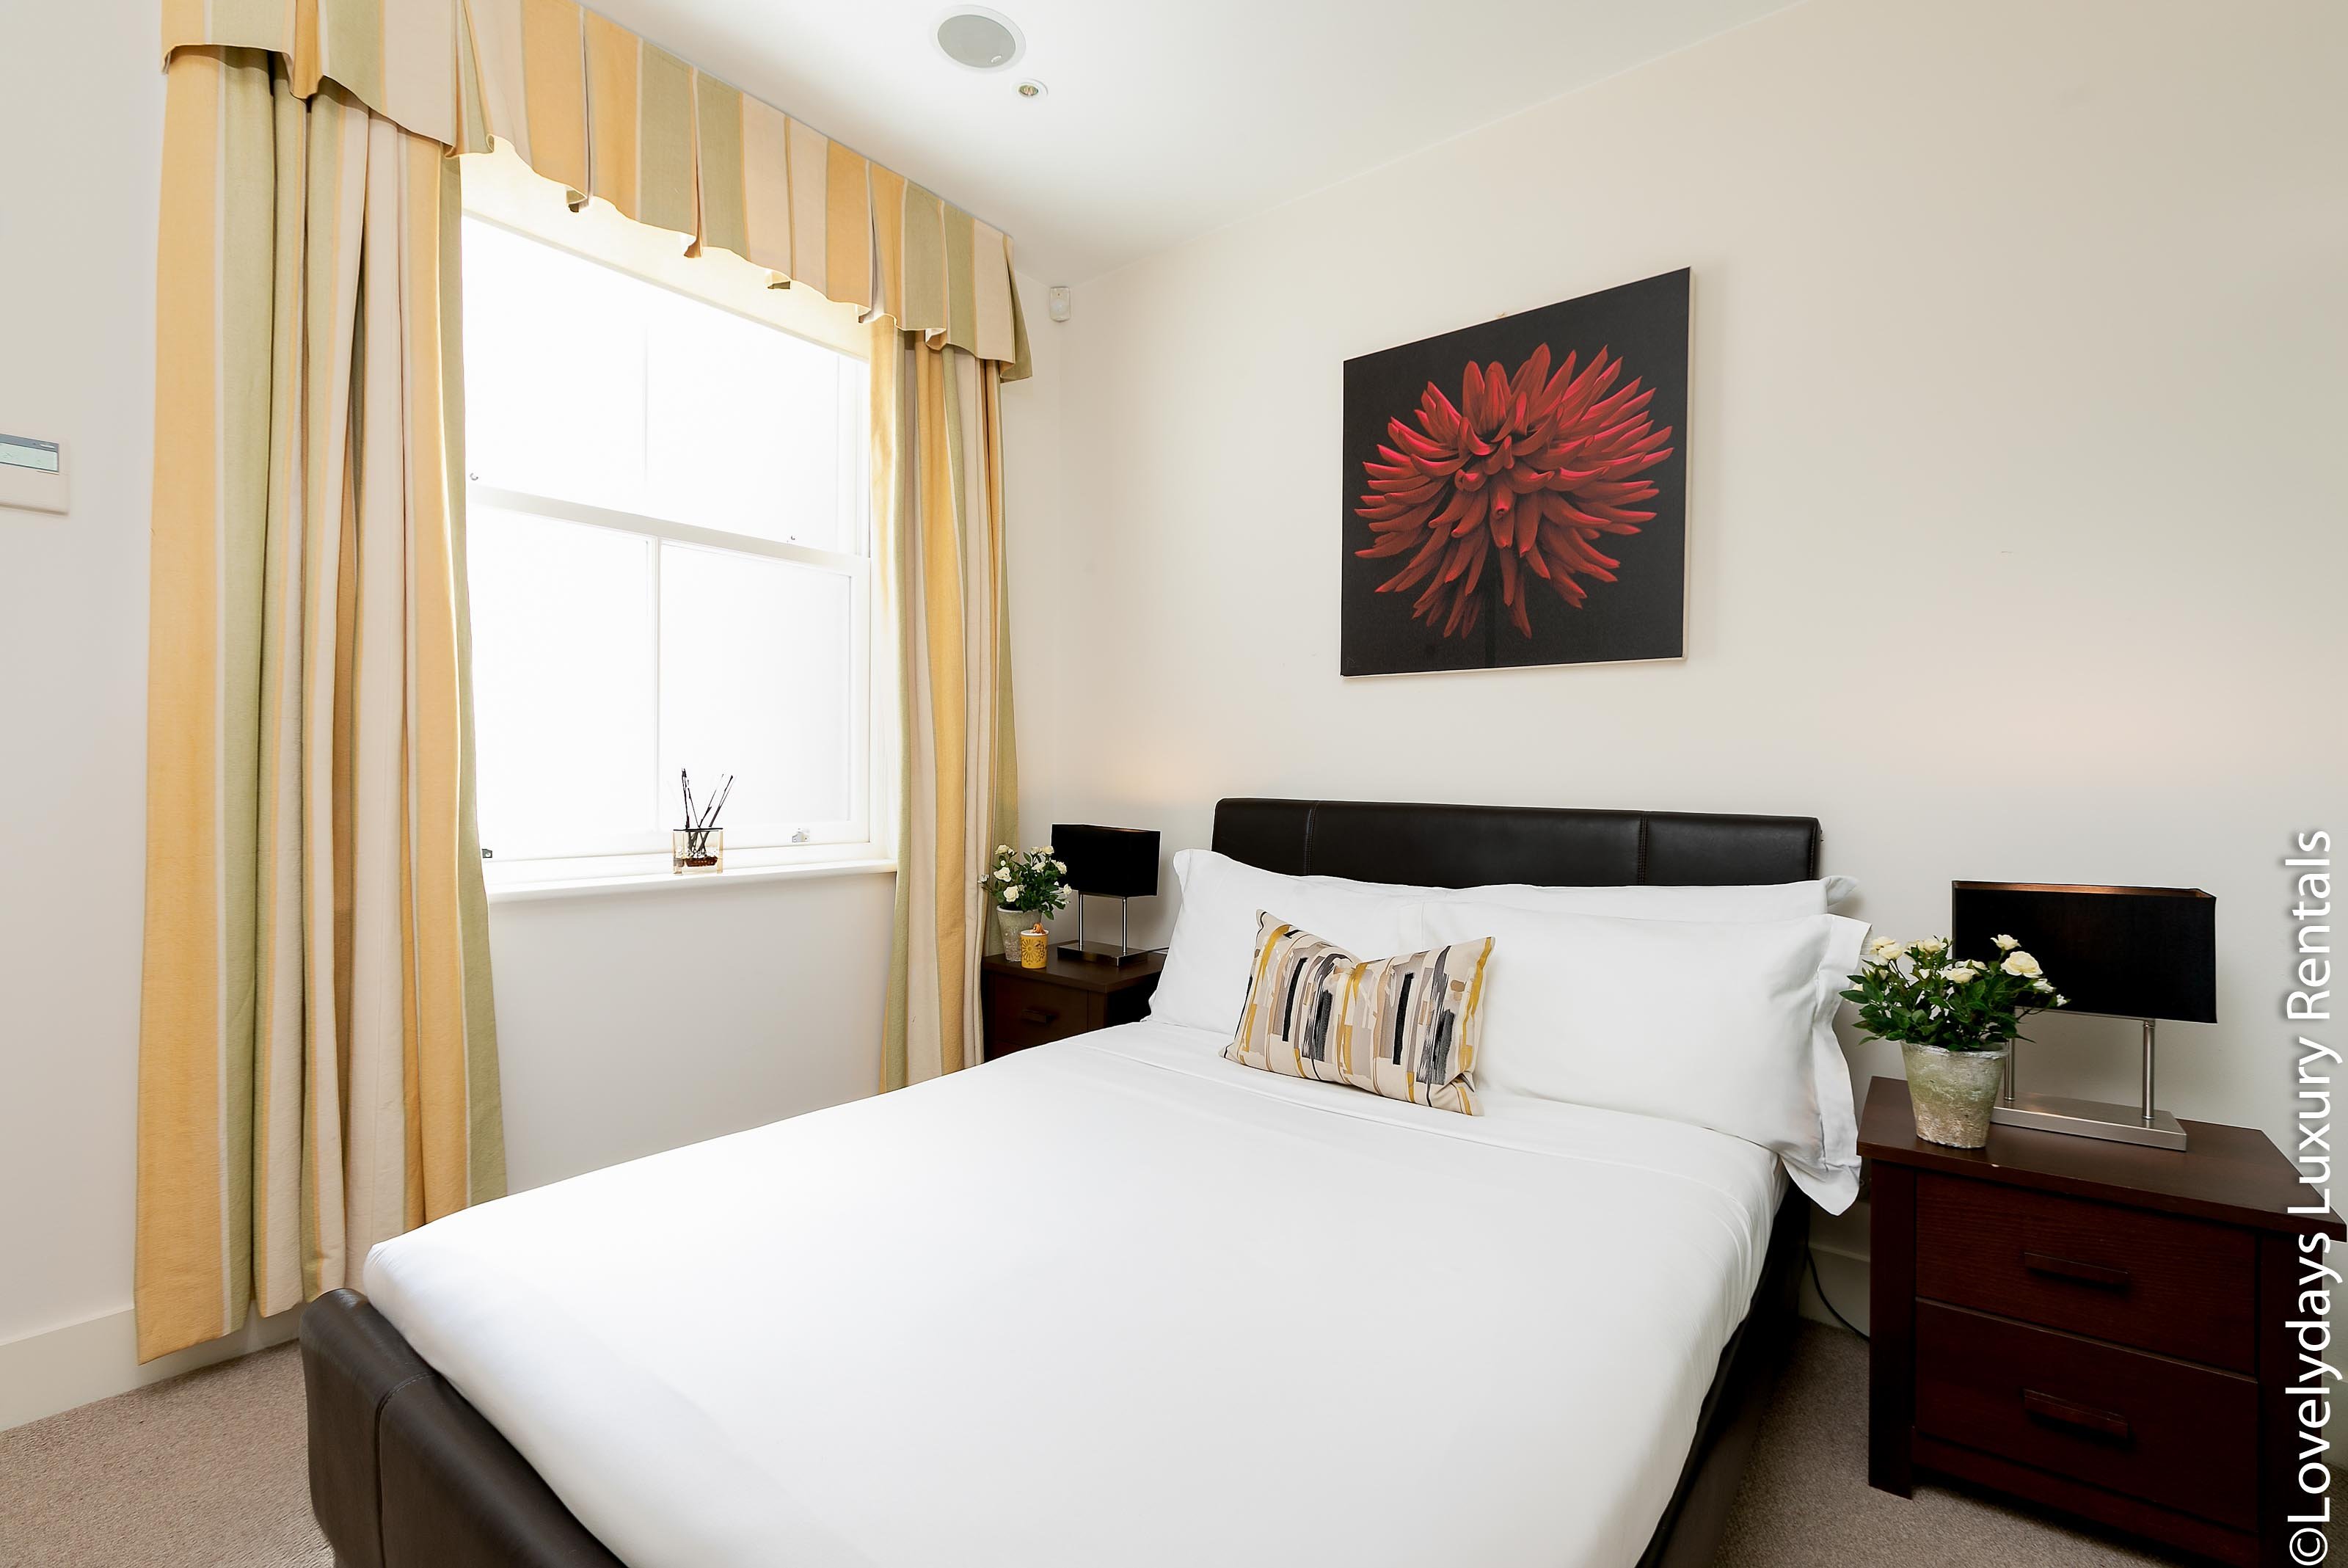 Lovelydays luxury service apartment rental - London - Knightsbridge - Hans Crescent - Partner - 2 bedrooms - 2 bathrooms - Double bed - f7e4213a27c4 - Lovelydays